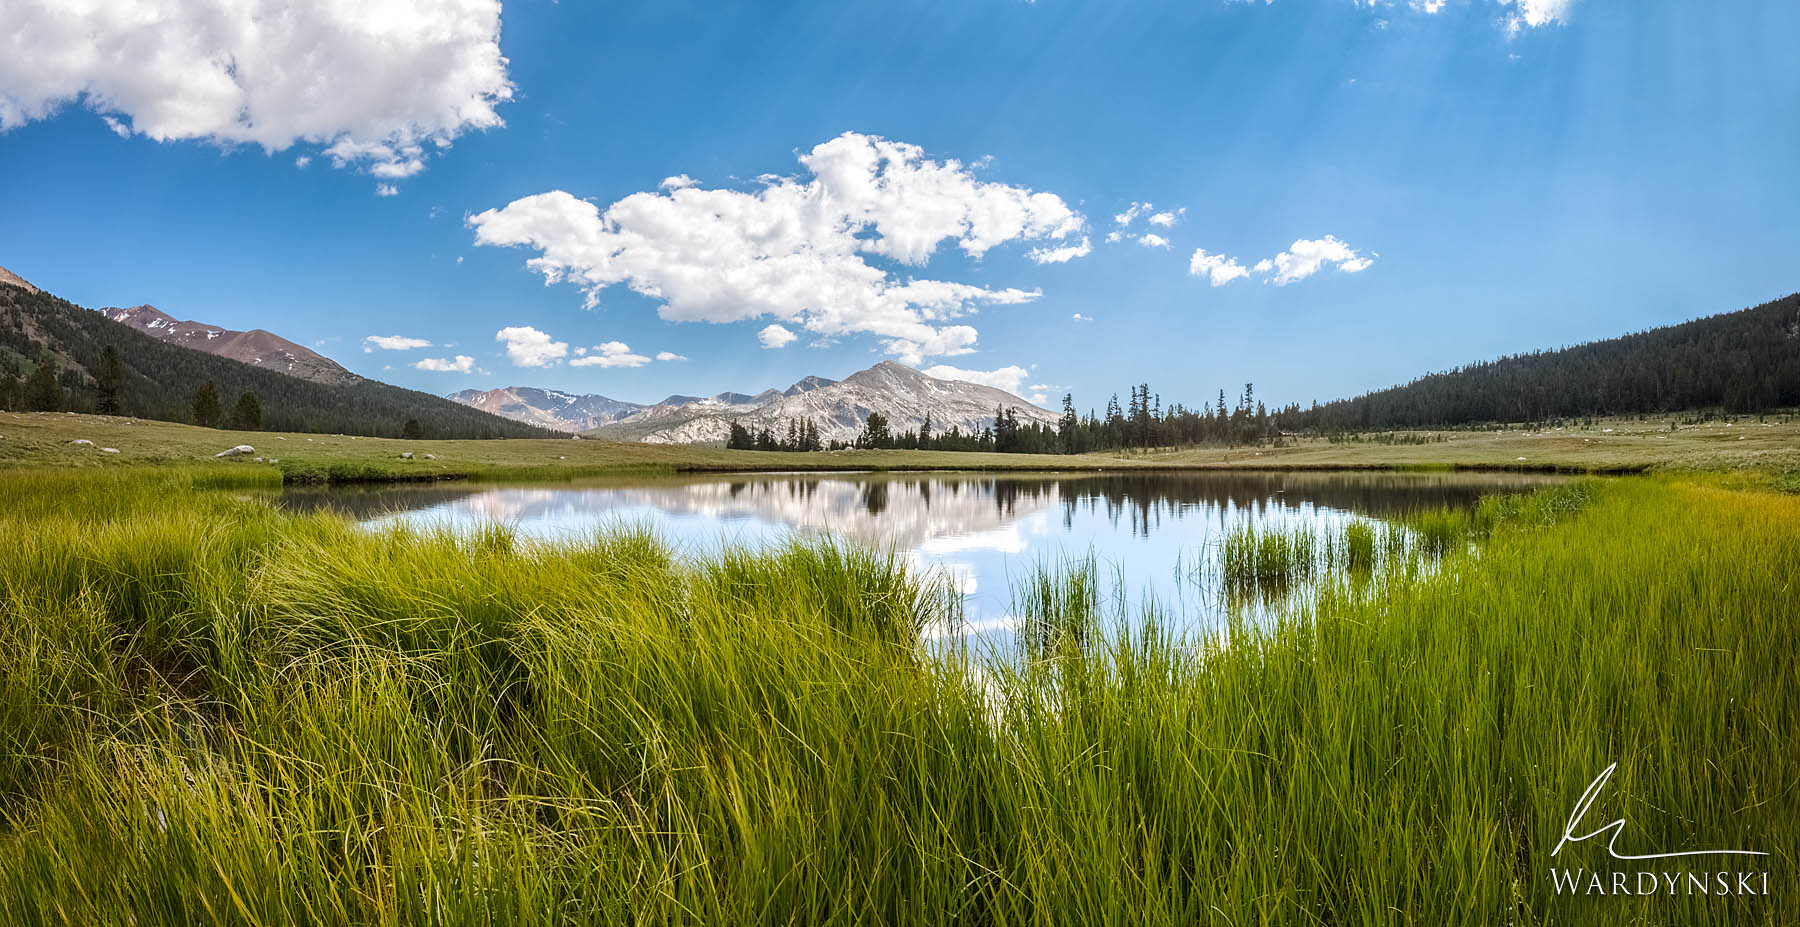 Fine Art Print | Limited Edition of 100  Tuloumne Meadows was made for peaceful day dreams. Still water creates pristine reflections...